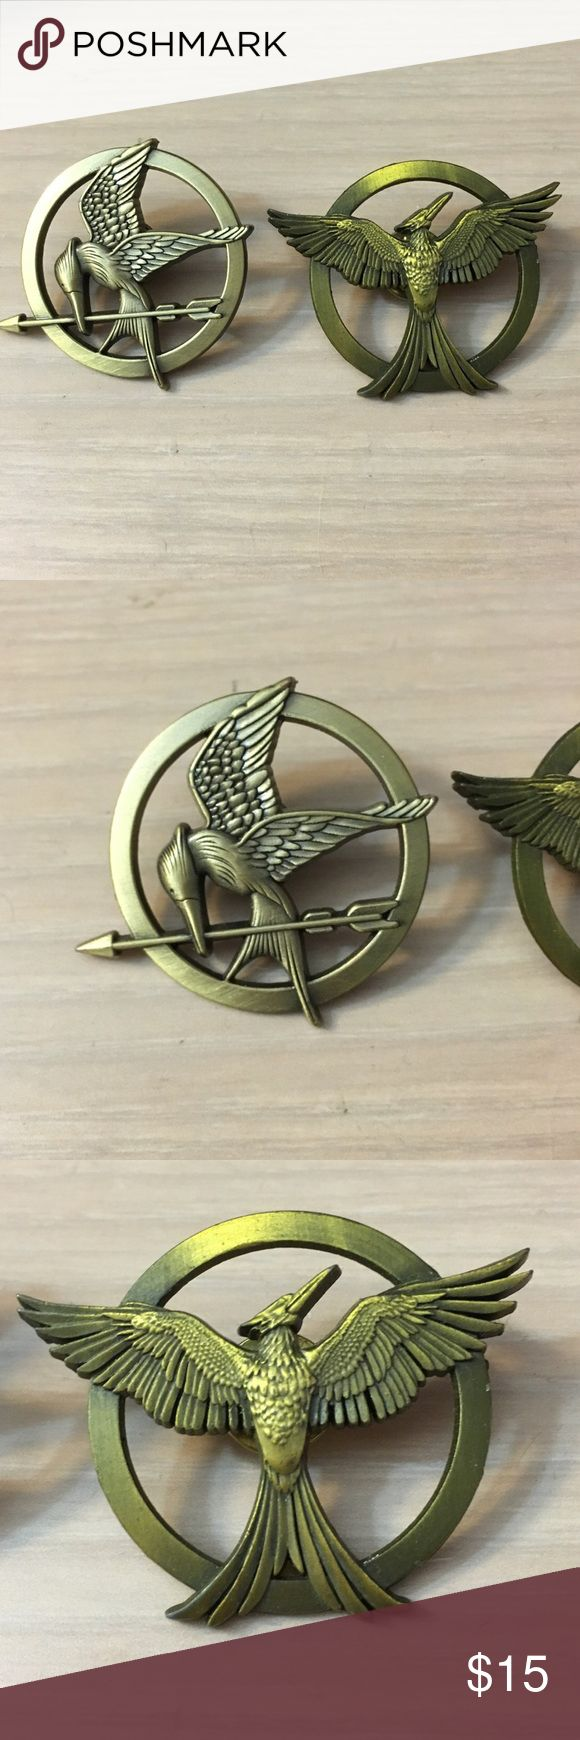 Hunger Games Pins 2 hunger games pins in PERFECT condition. Could be used for your Halloween costumes or as a collectible. These are about 5cm Jewelry Brooches